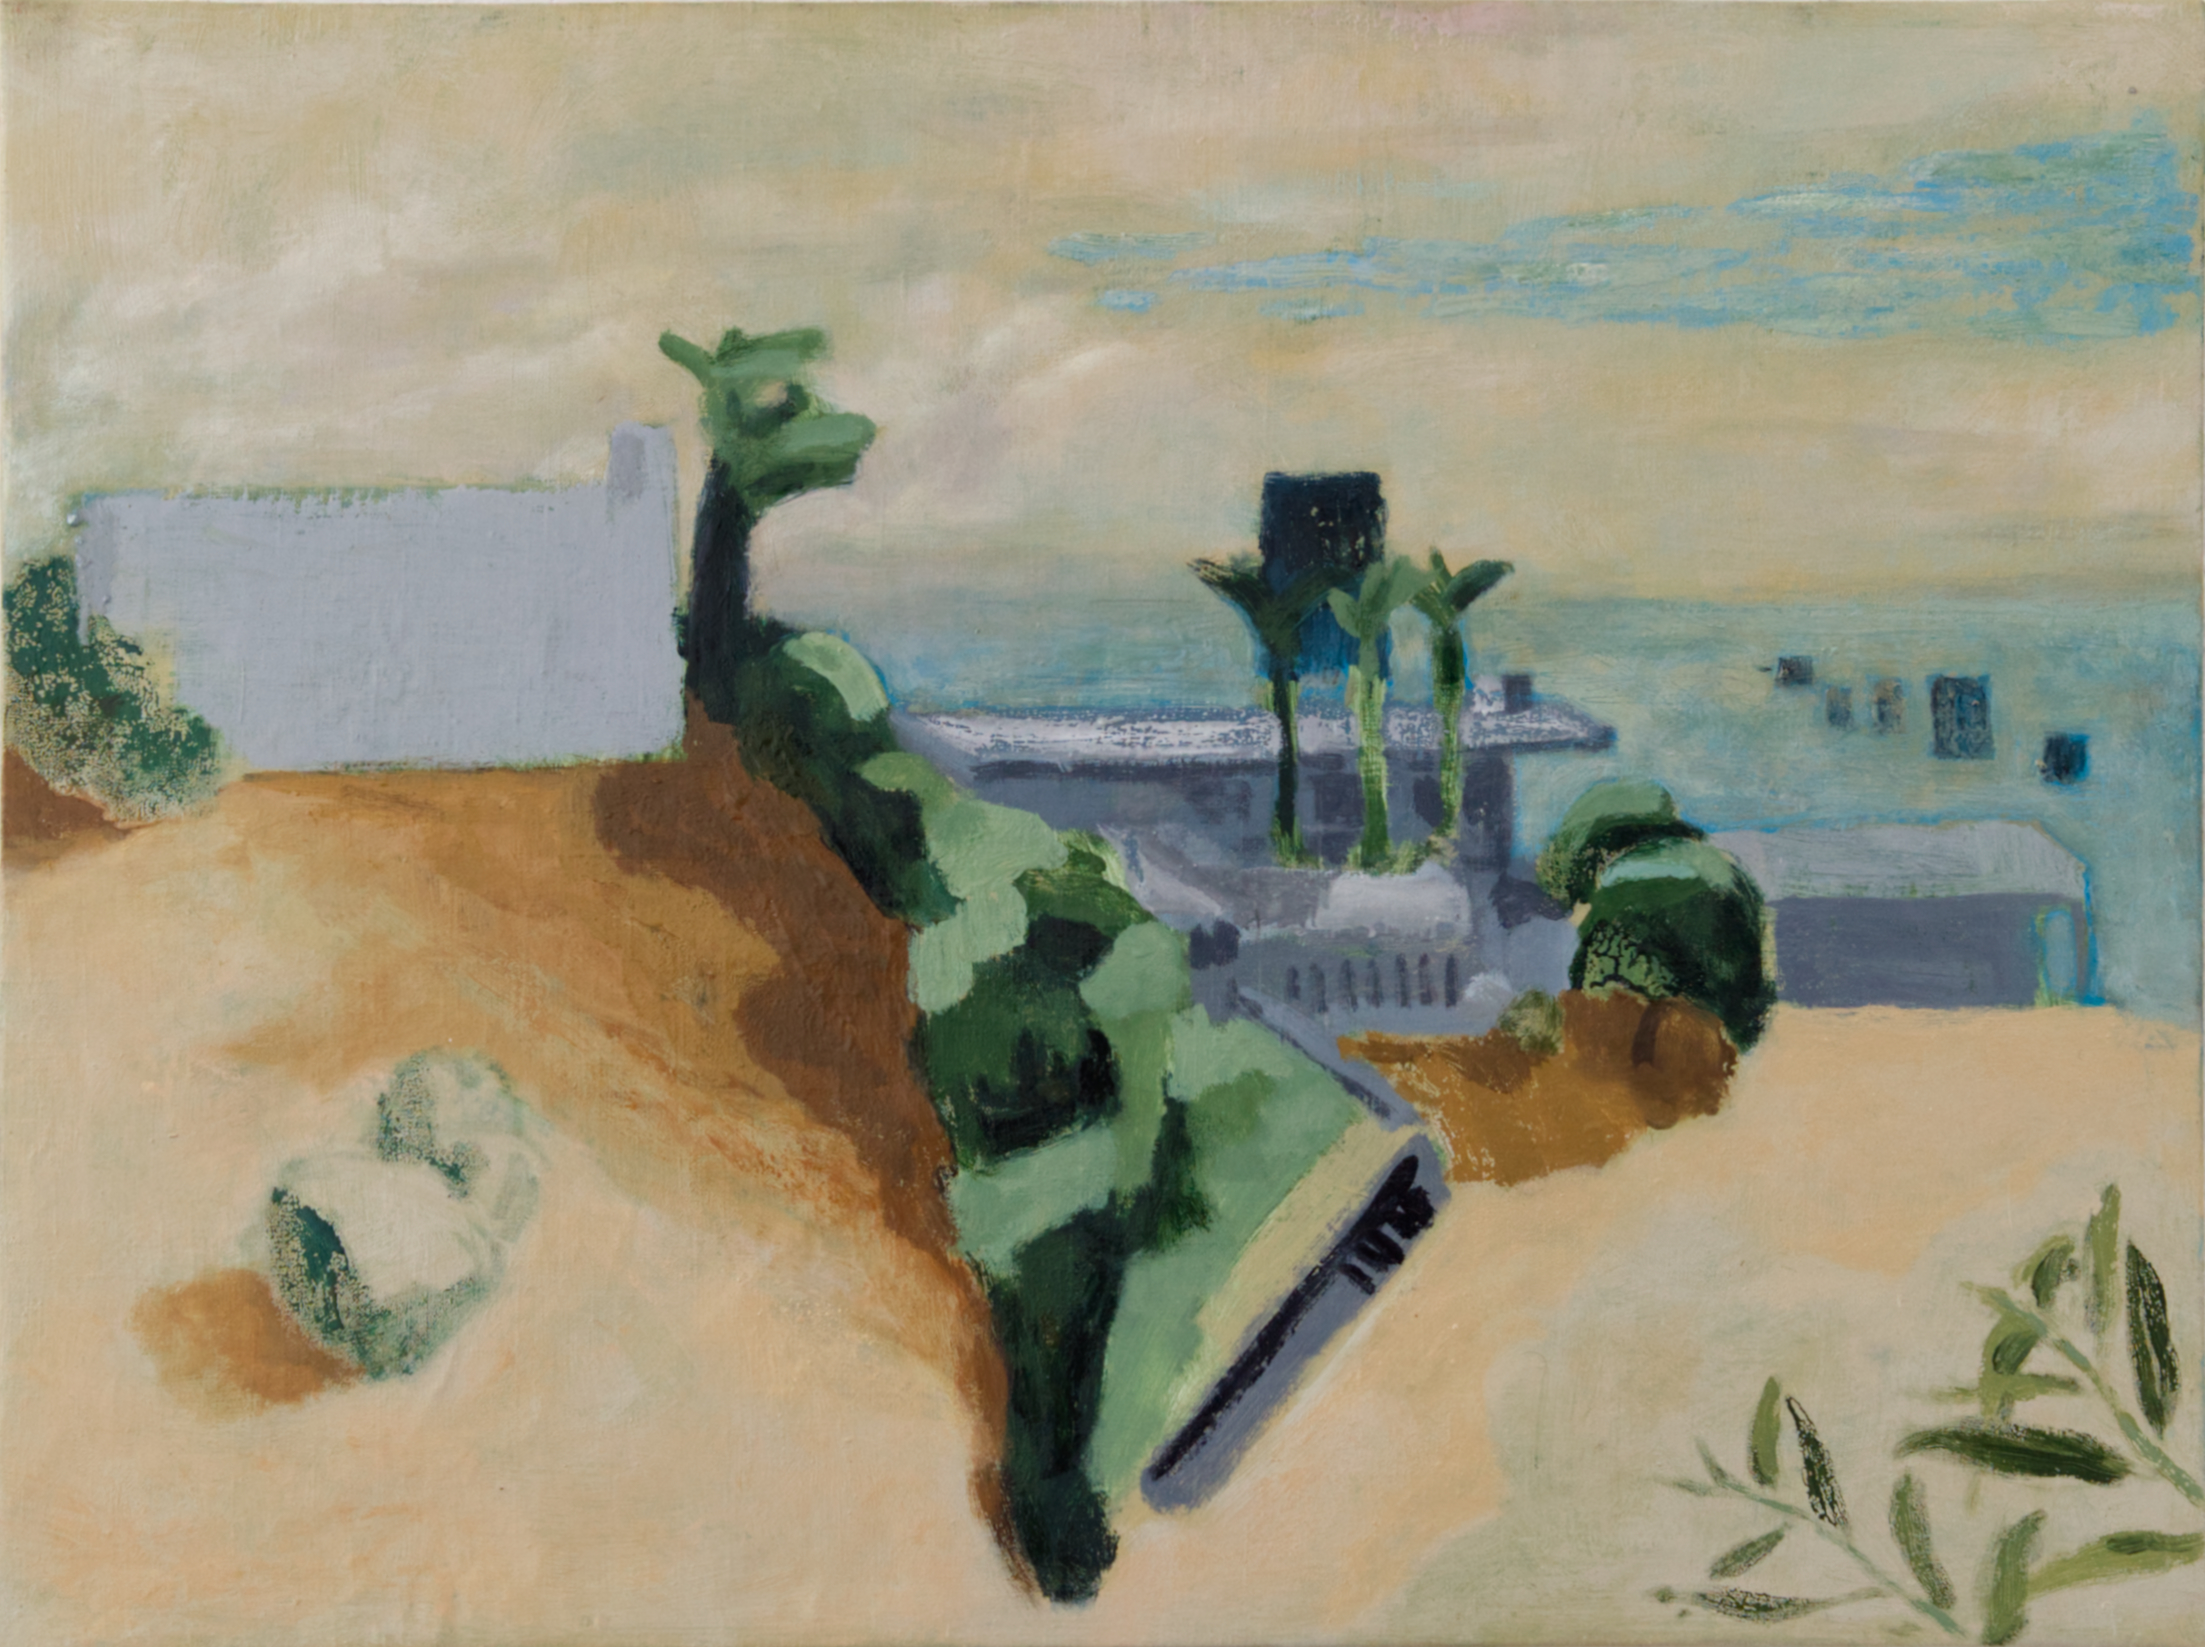 Painting of a View from Griffith park by Nils Benson